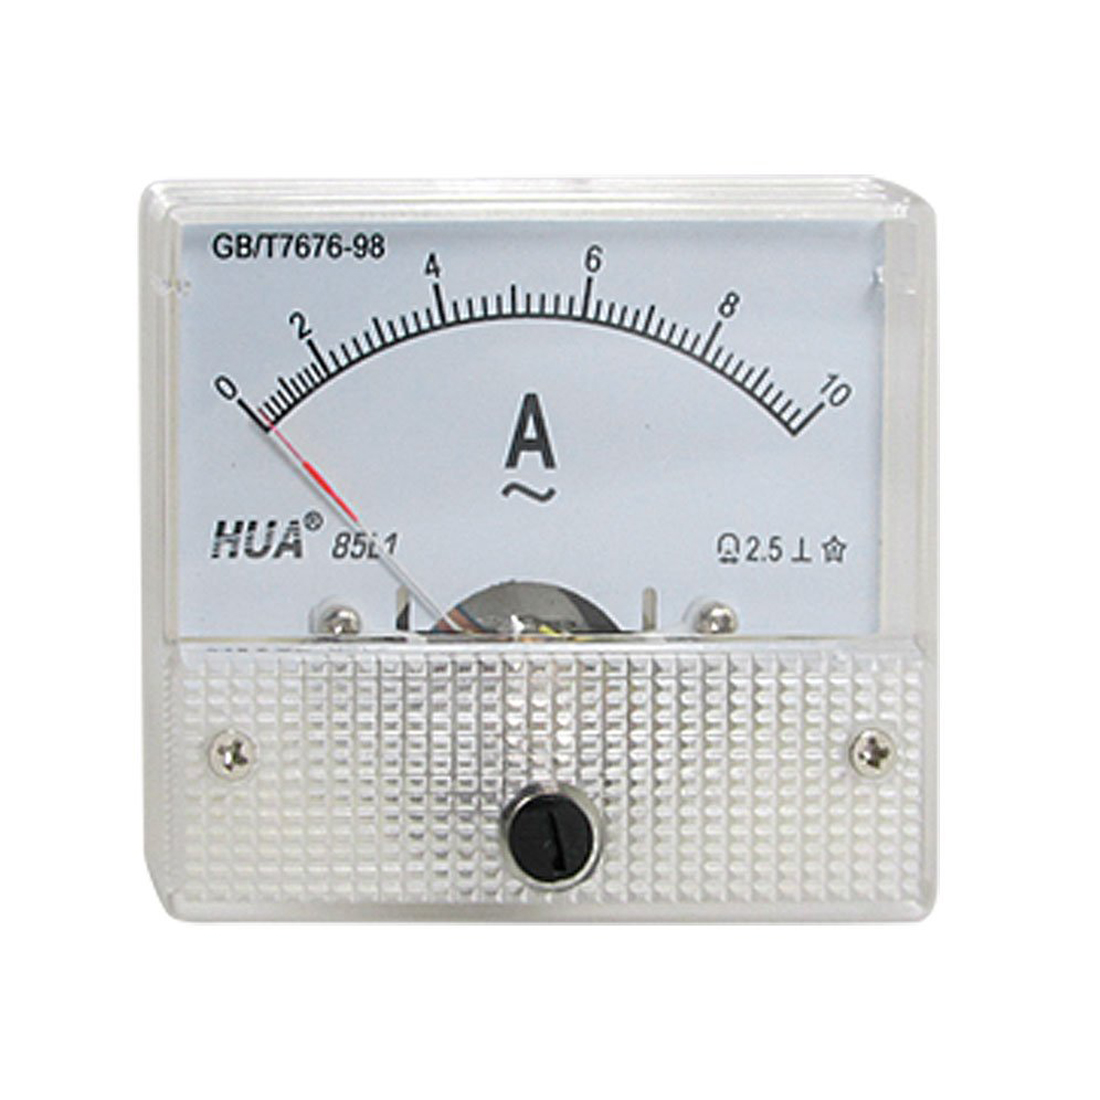 Ac Amp Meter Panel : Cf class accuracy ac a analog panel amp meter l